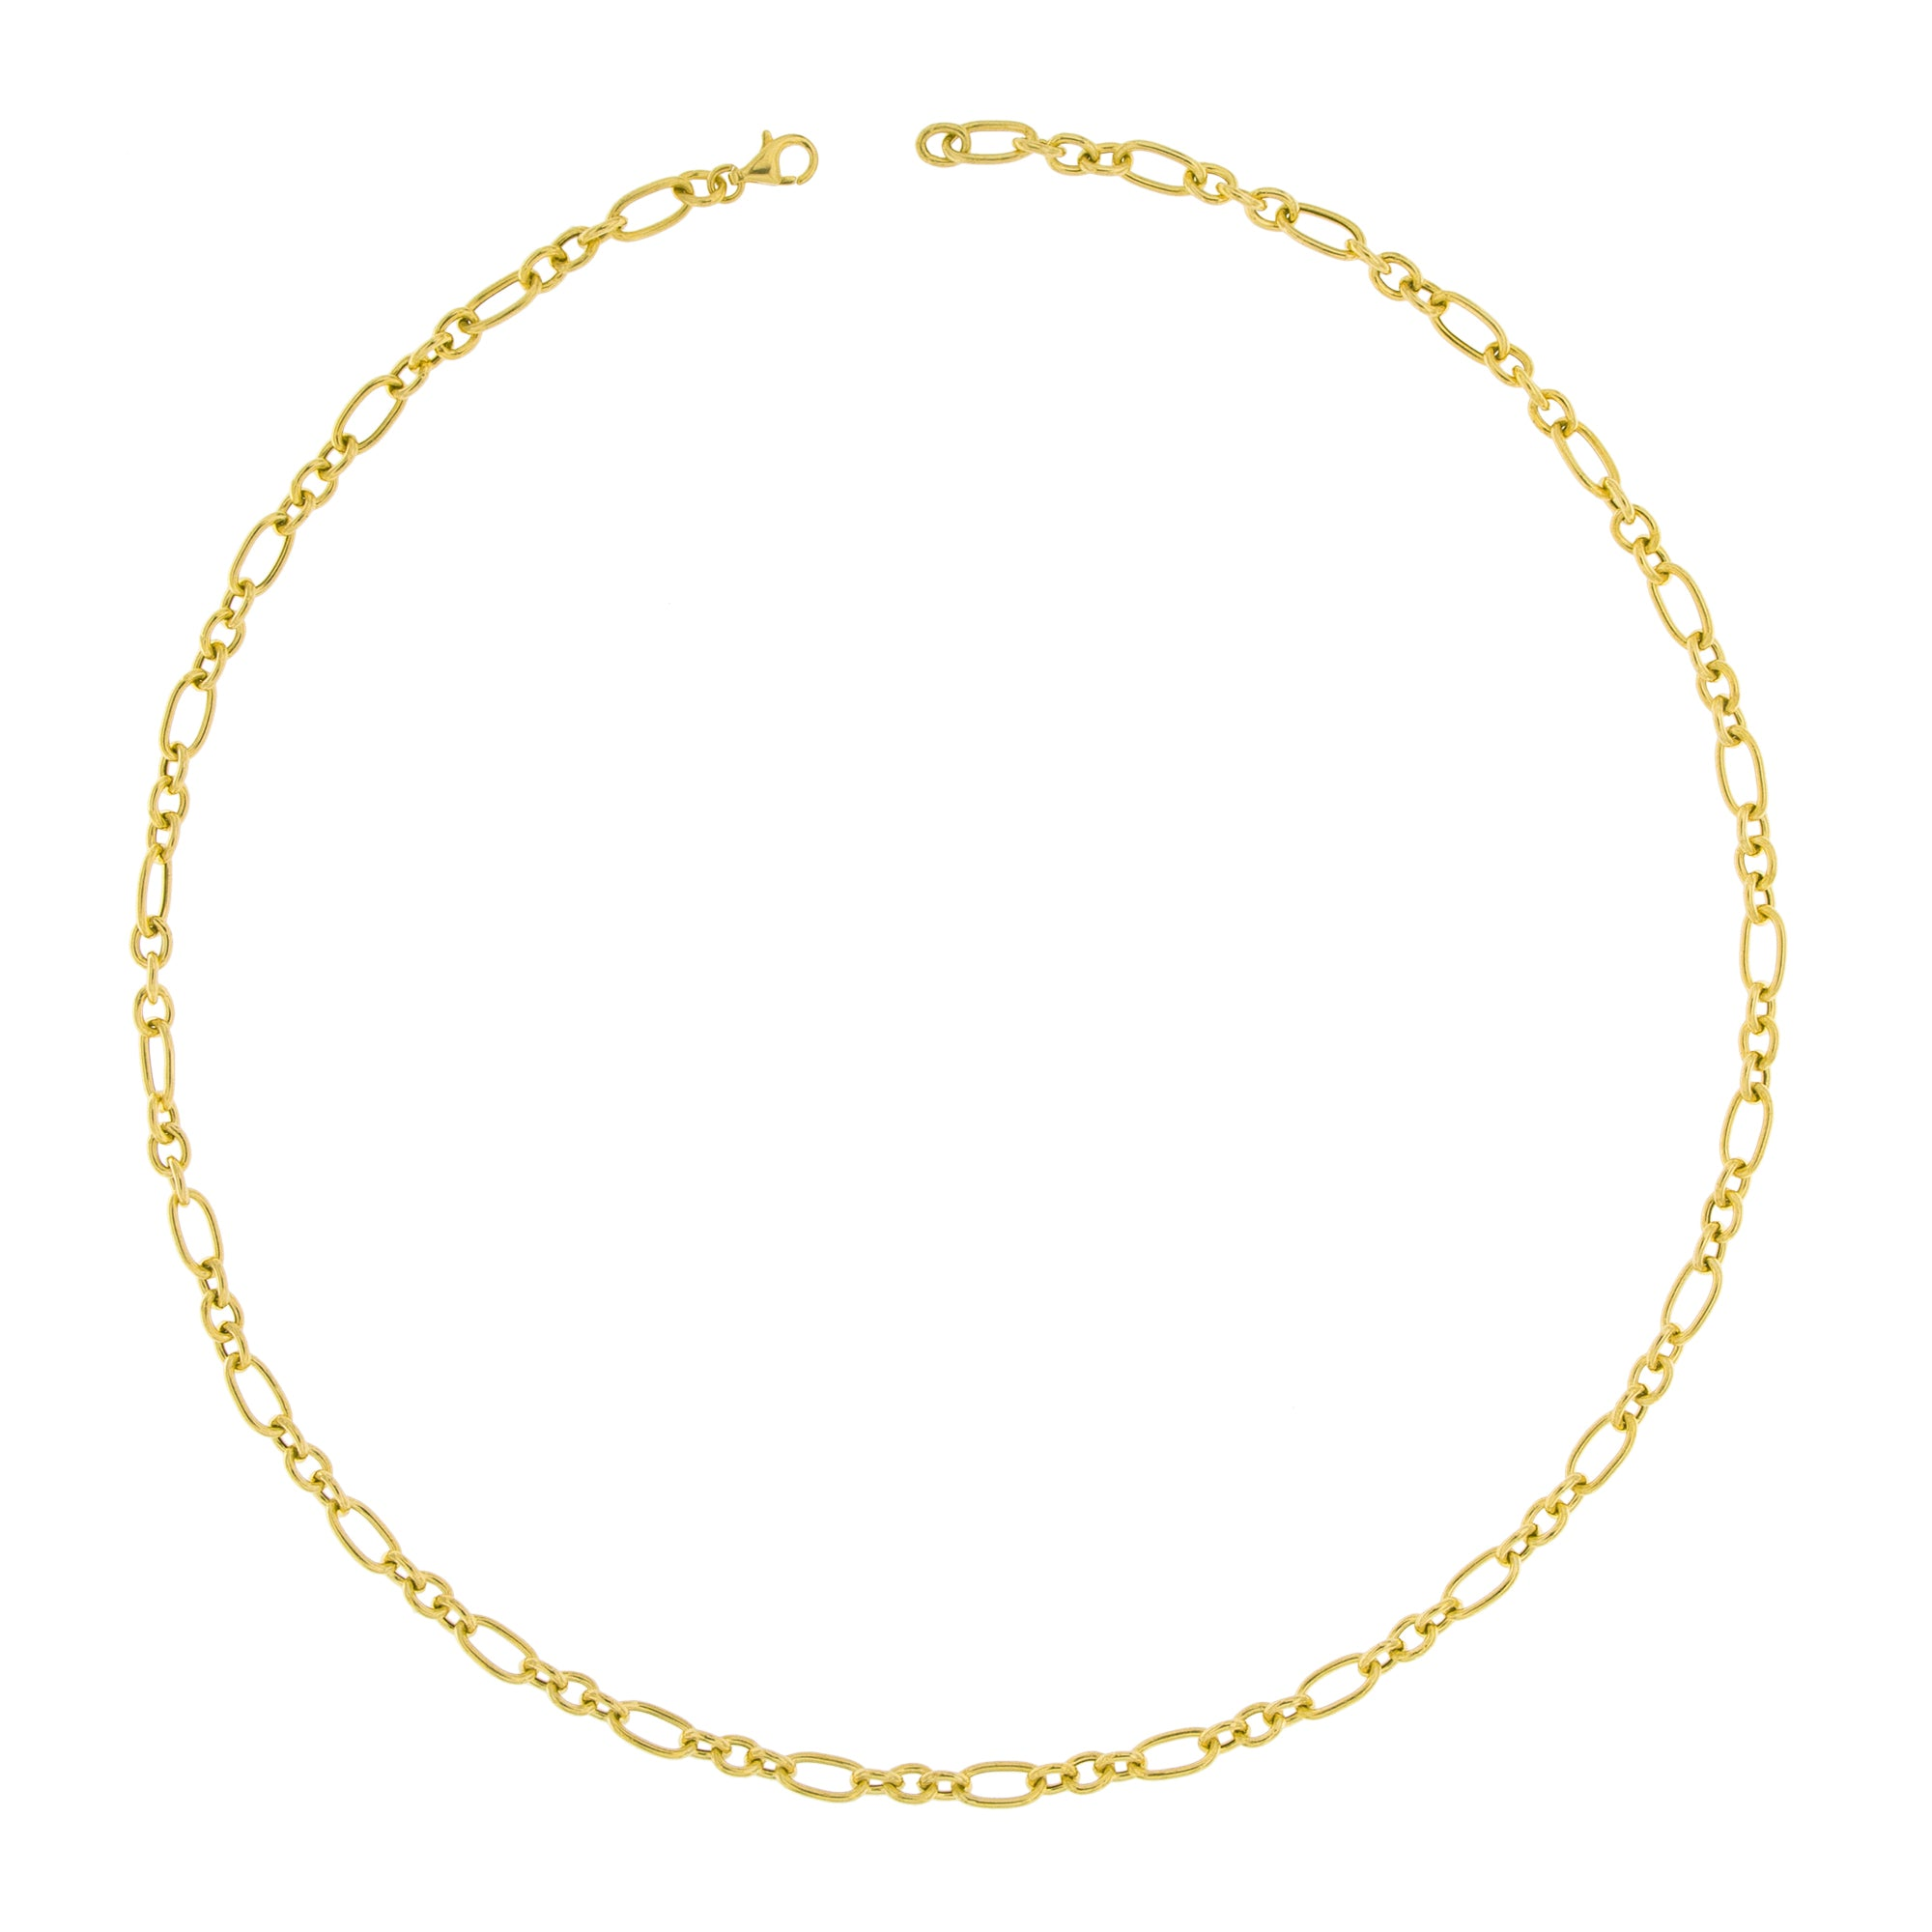 Chokers - Necklace With Vintage Alternating Cable Chain  - 2 | Rue des Mille